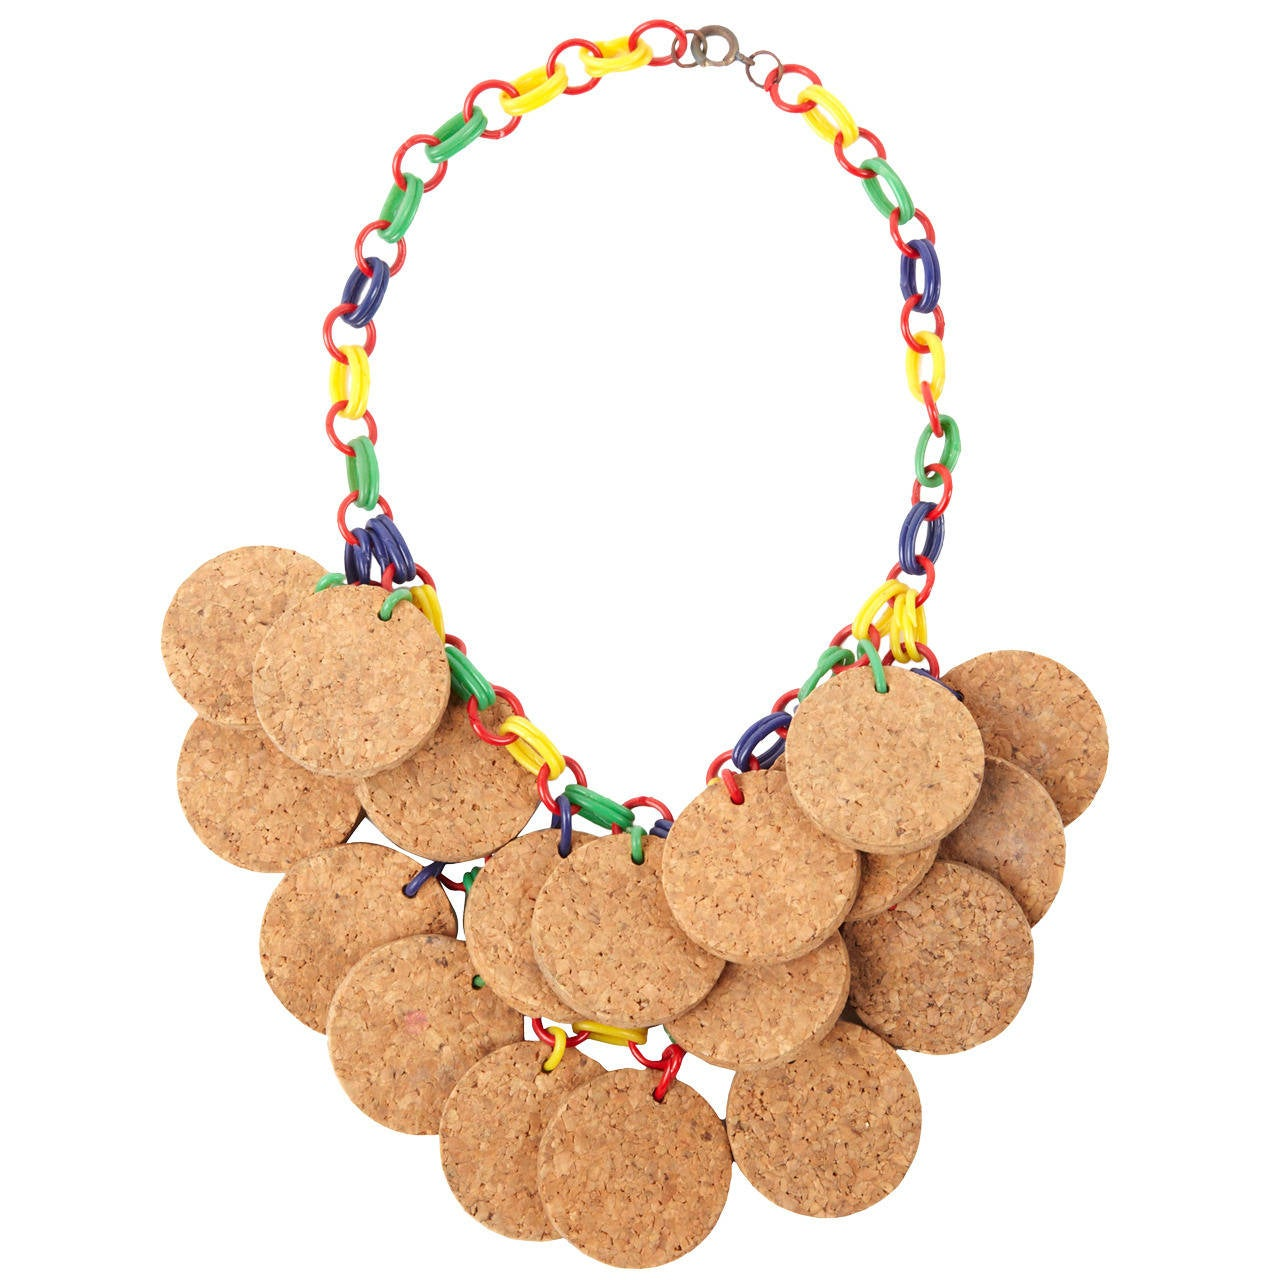 Cork Jewelry: Deco Bakelite And Cork Necklace For Sale At 1stdibs